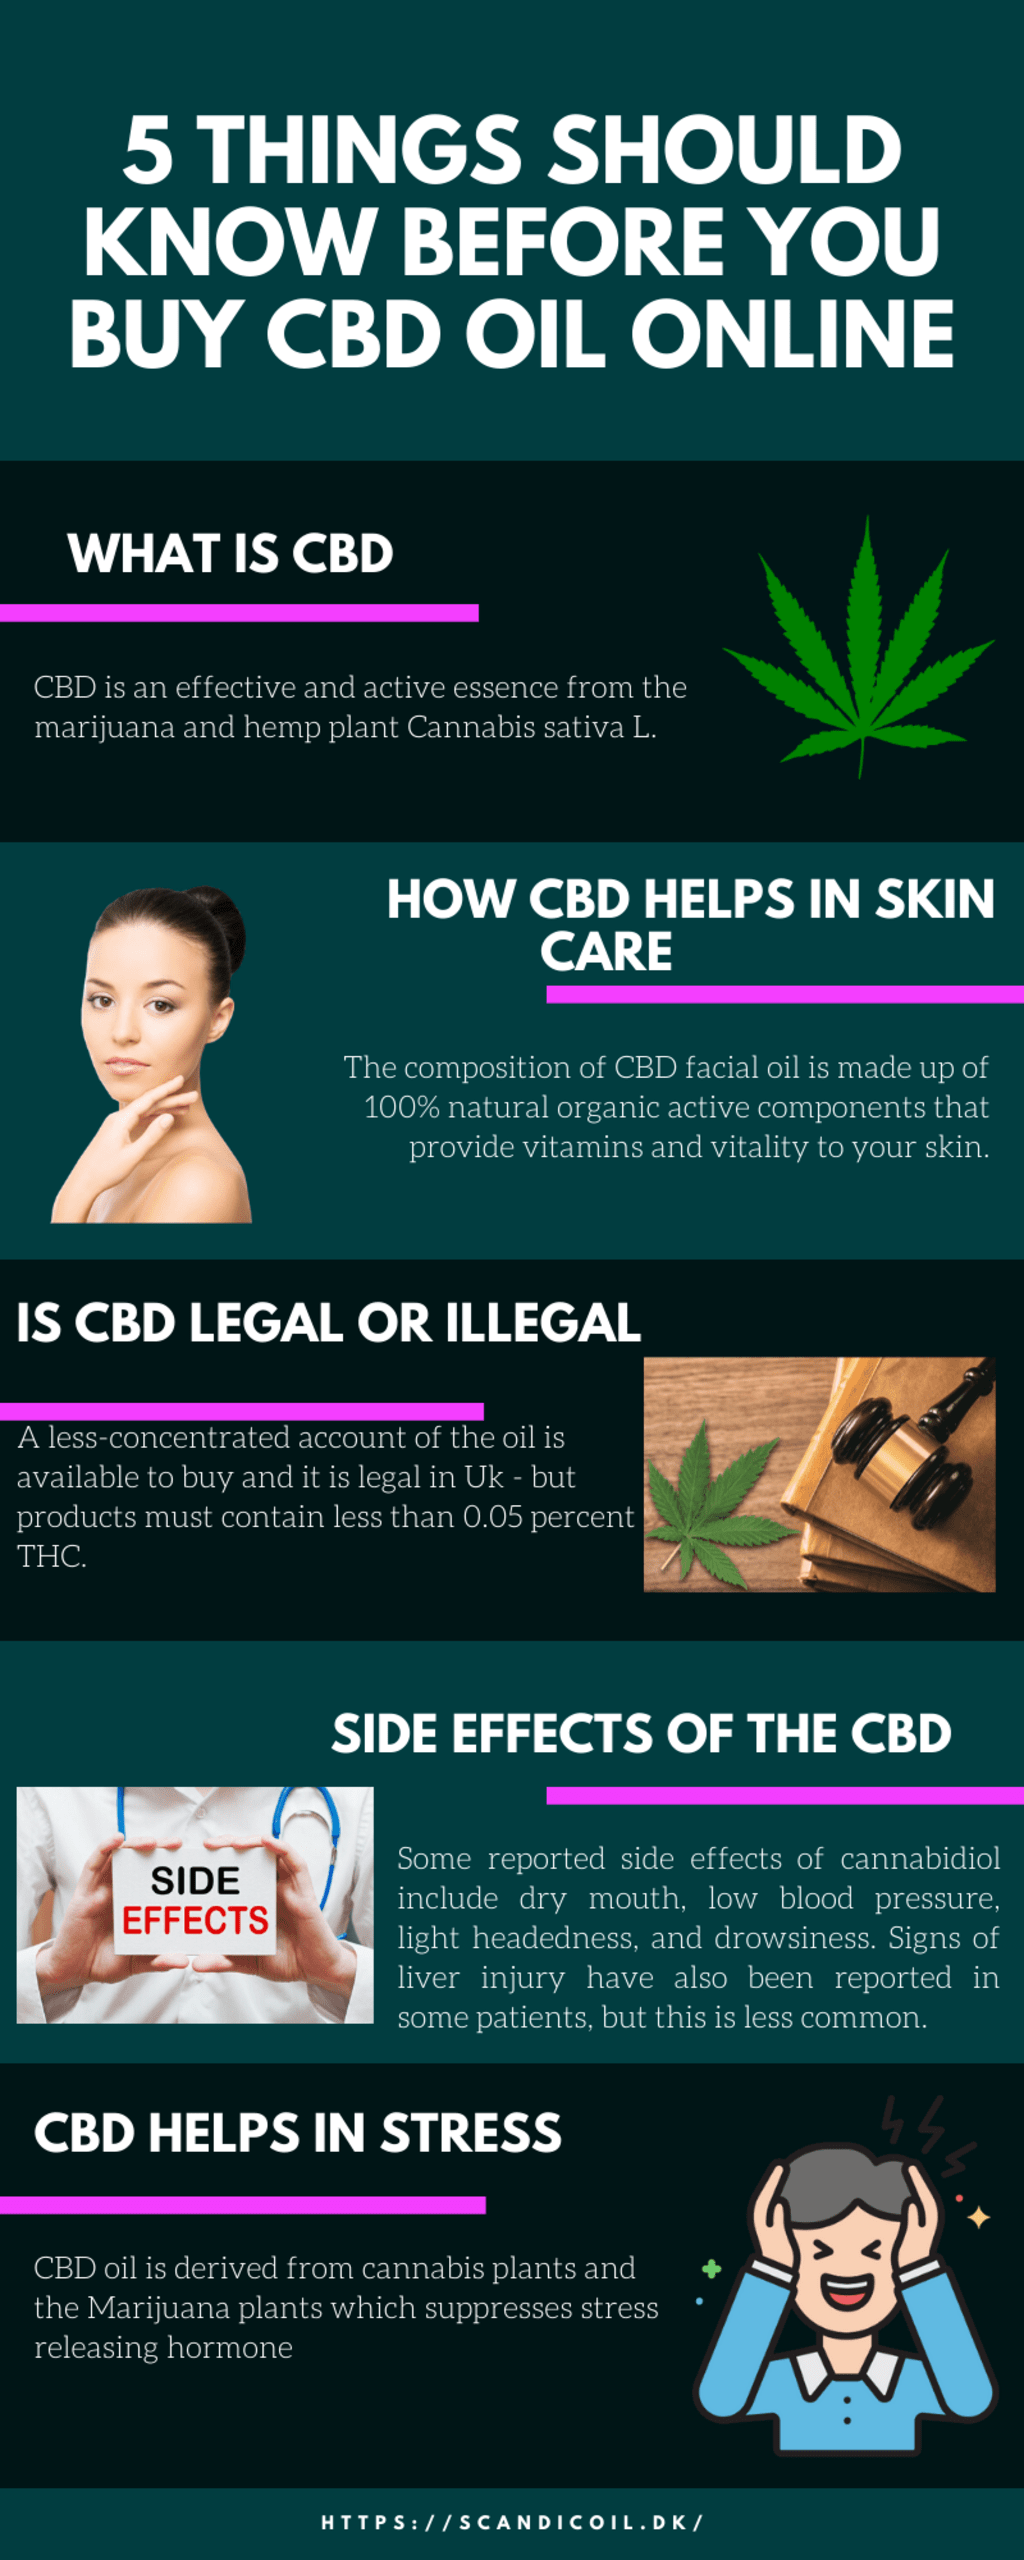 5 Things Should Know Before You Buy CBD Oil Online